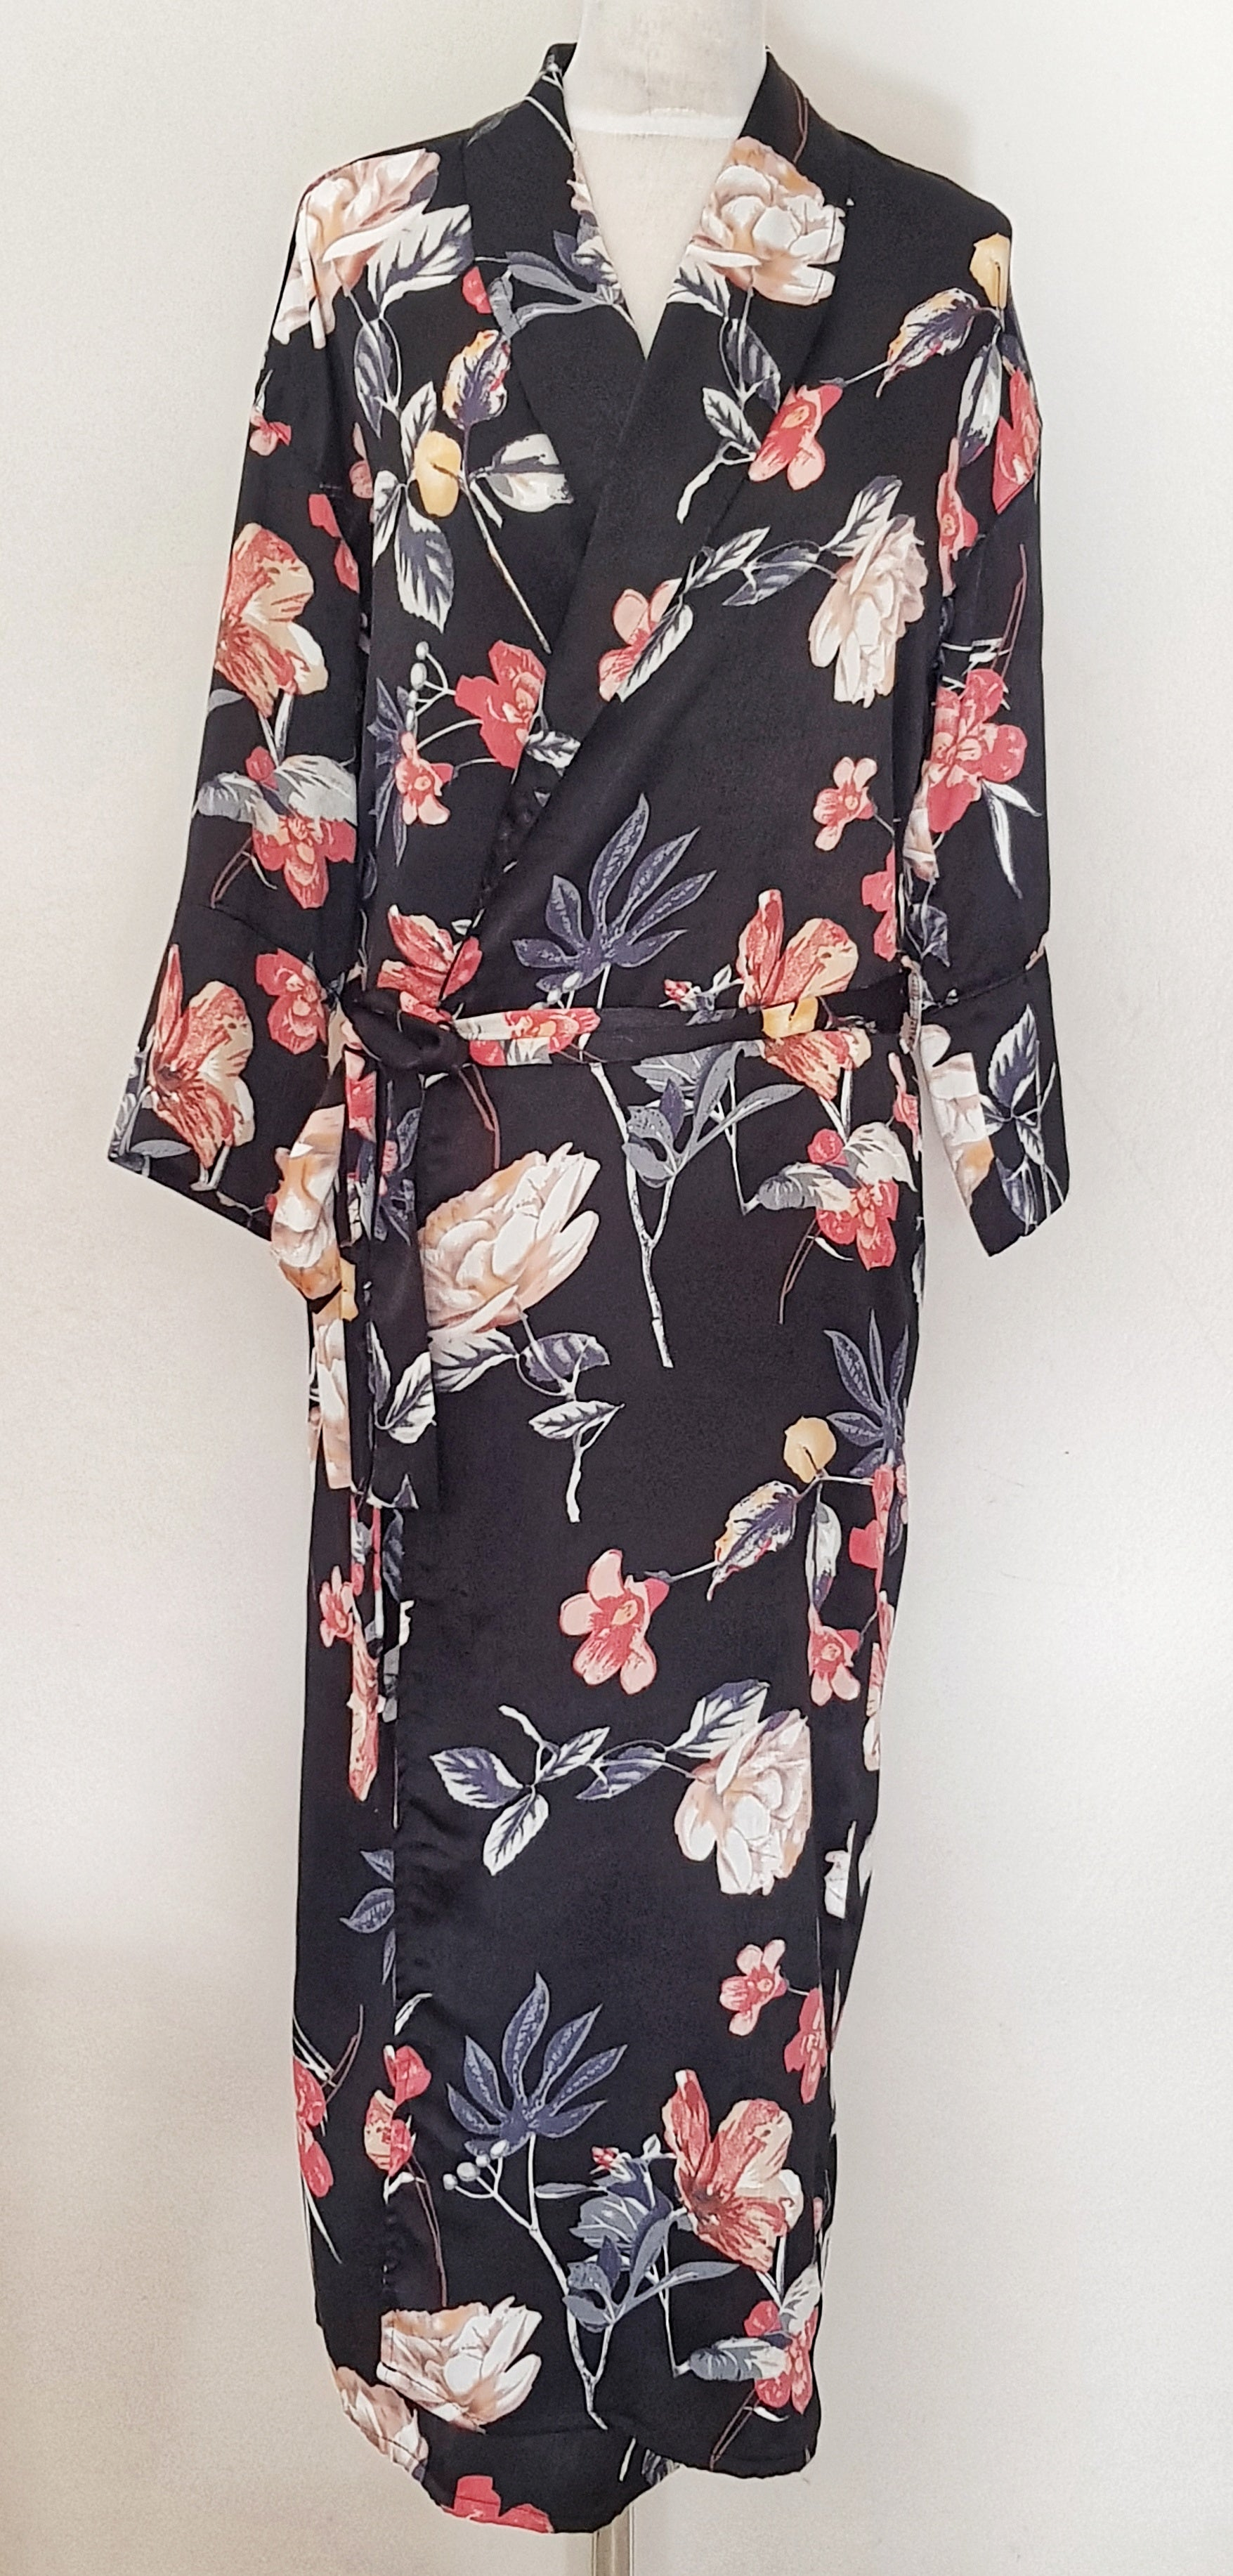 Nightgown - black floral